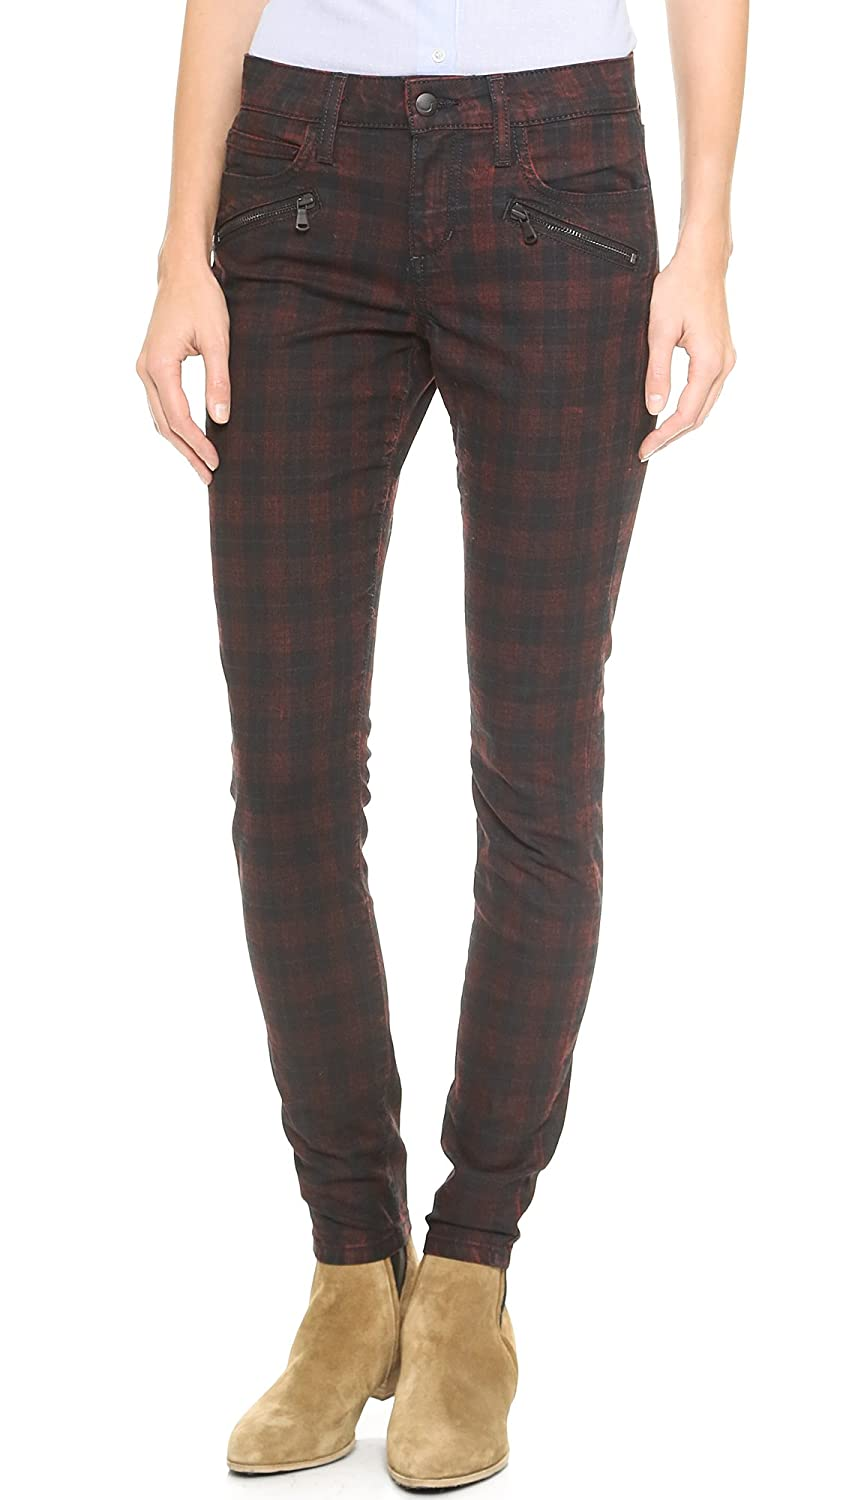 Joe's Jeans Women's in Line Zip Skinny in Coated Red Plaid